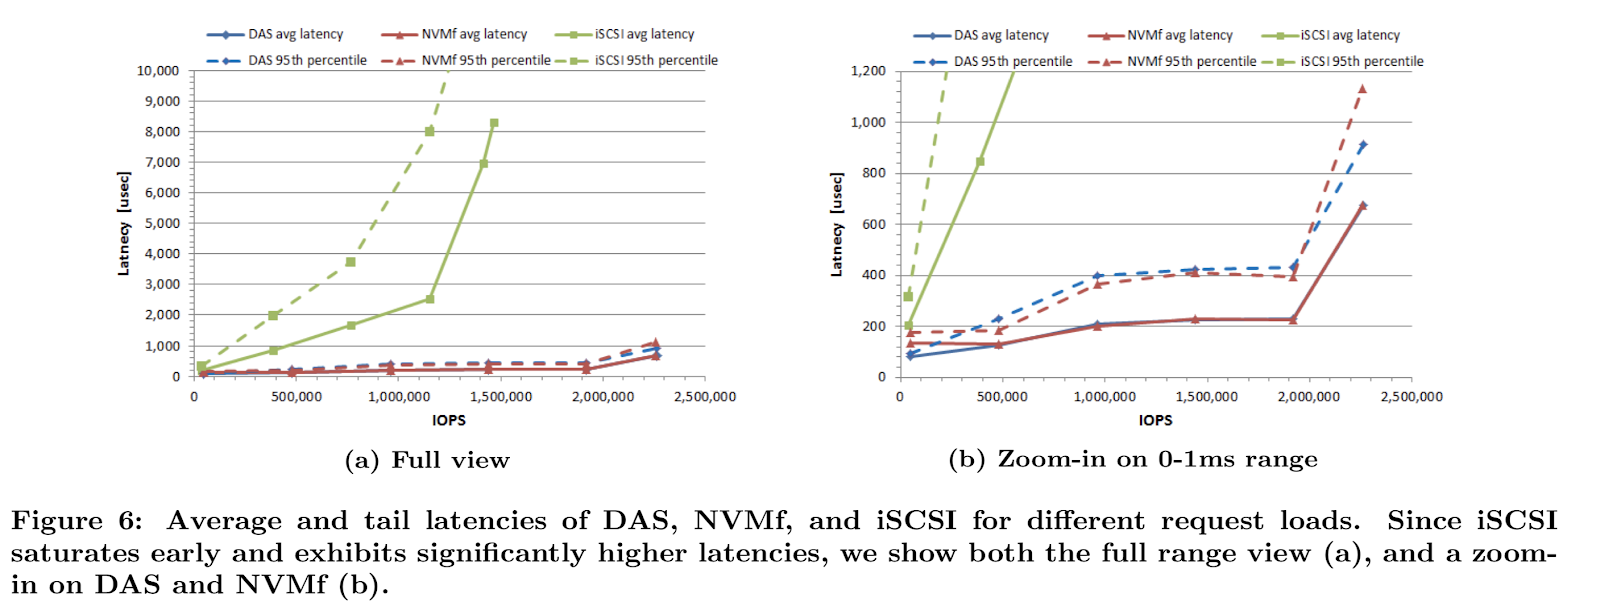 Average and tail latencies of DAS, NVMF and iSCSI of different request loads.